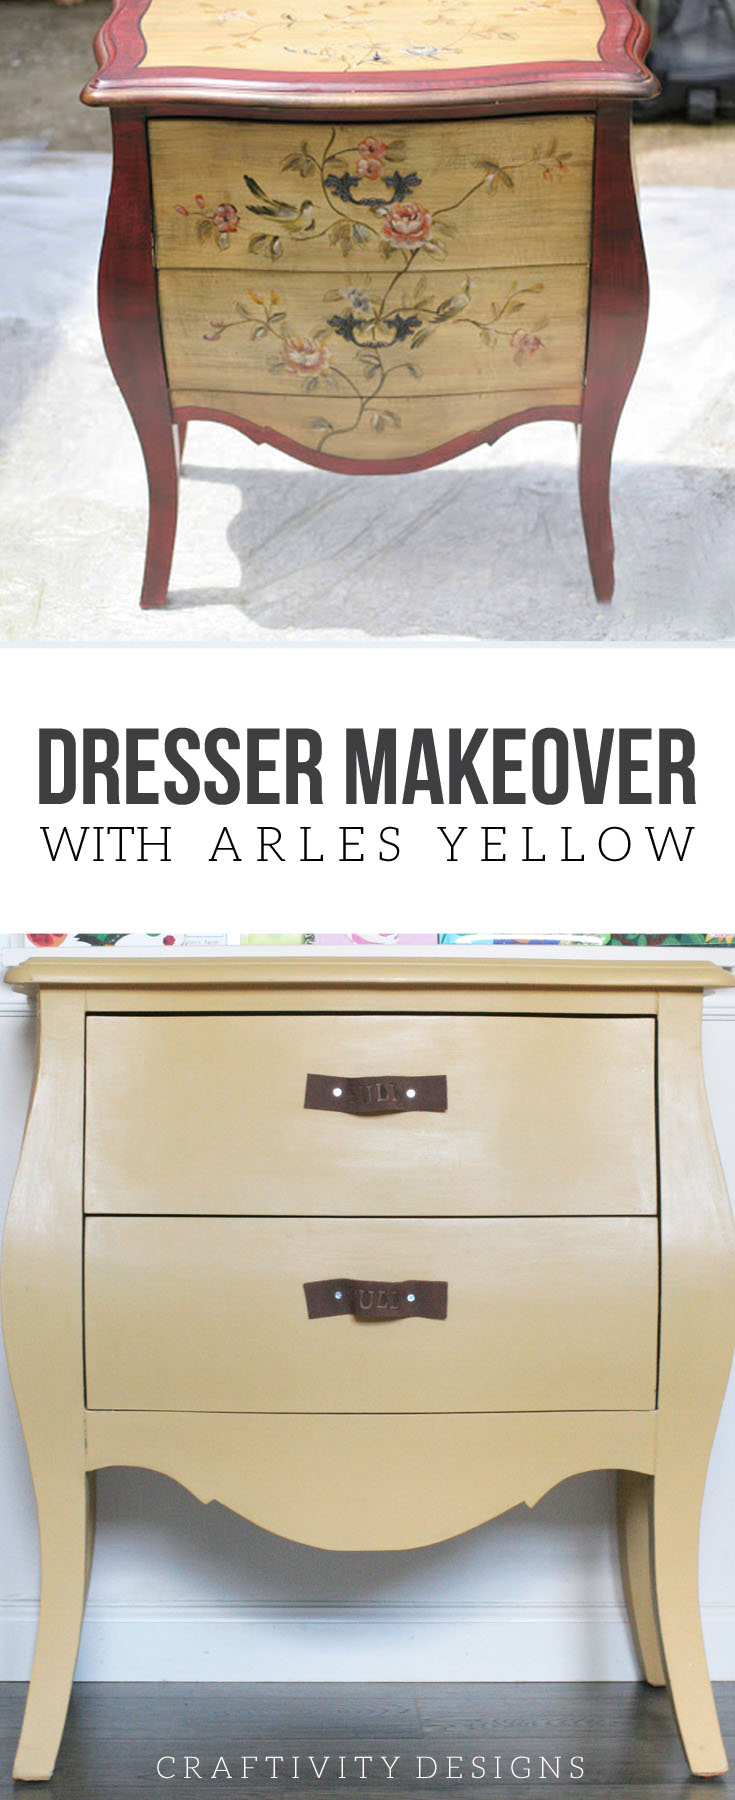 Colorful Painted Dresser Makeover with Arles Yellow, Yellow Dresser, Painted Furniture, Furniture Makeover, Annie Sloan Chalk Paint, #ascp, #repurpose, #beforeandafter